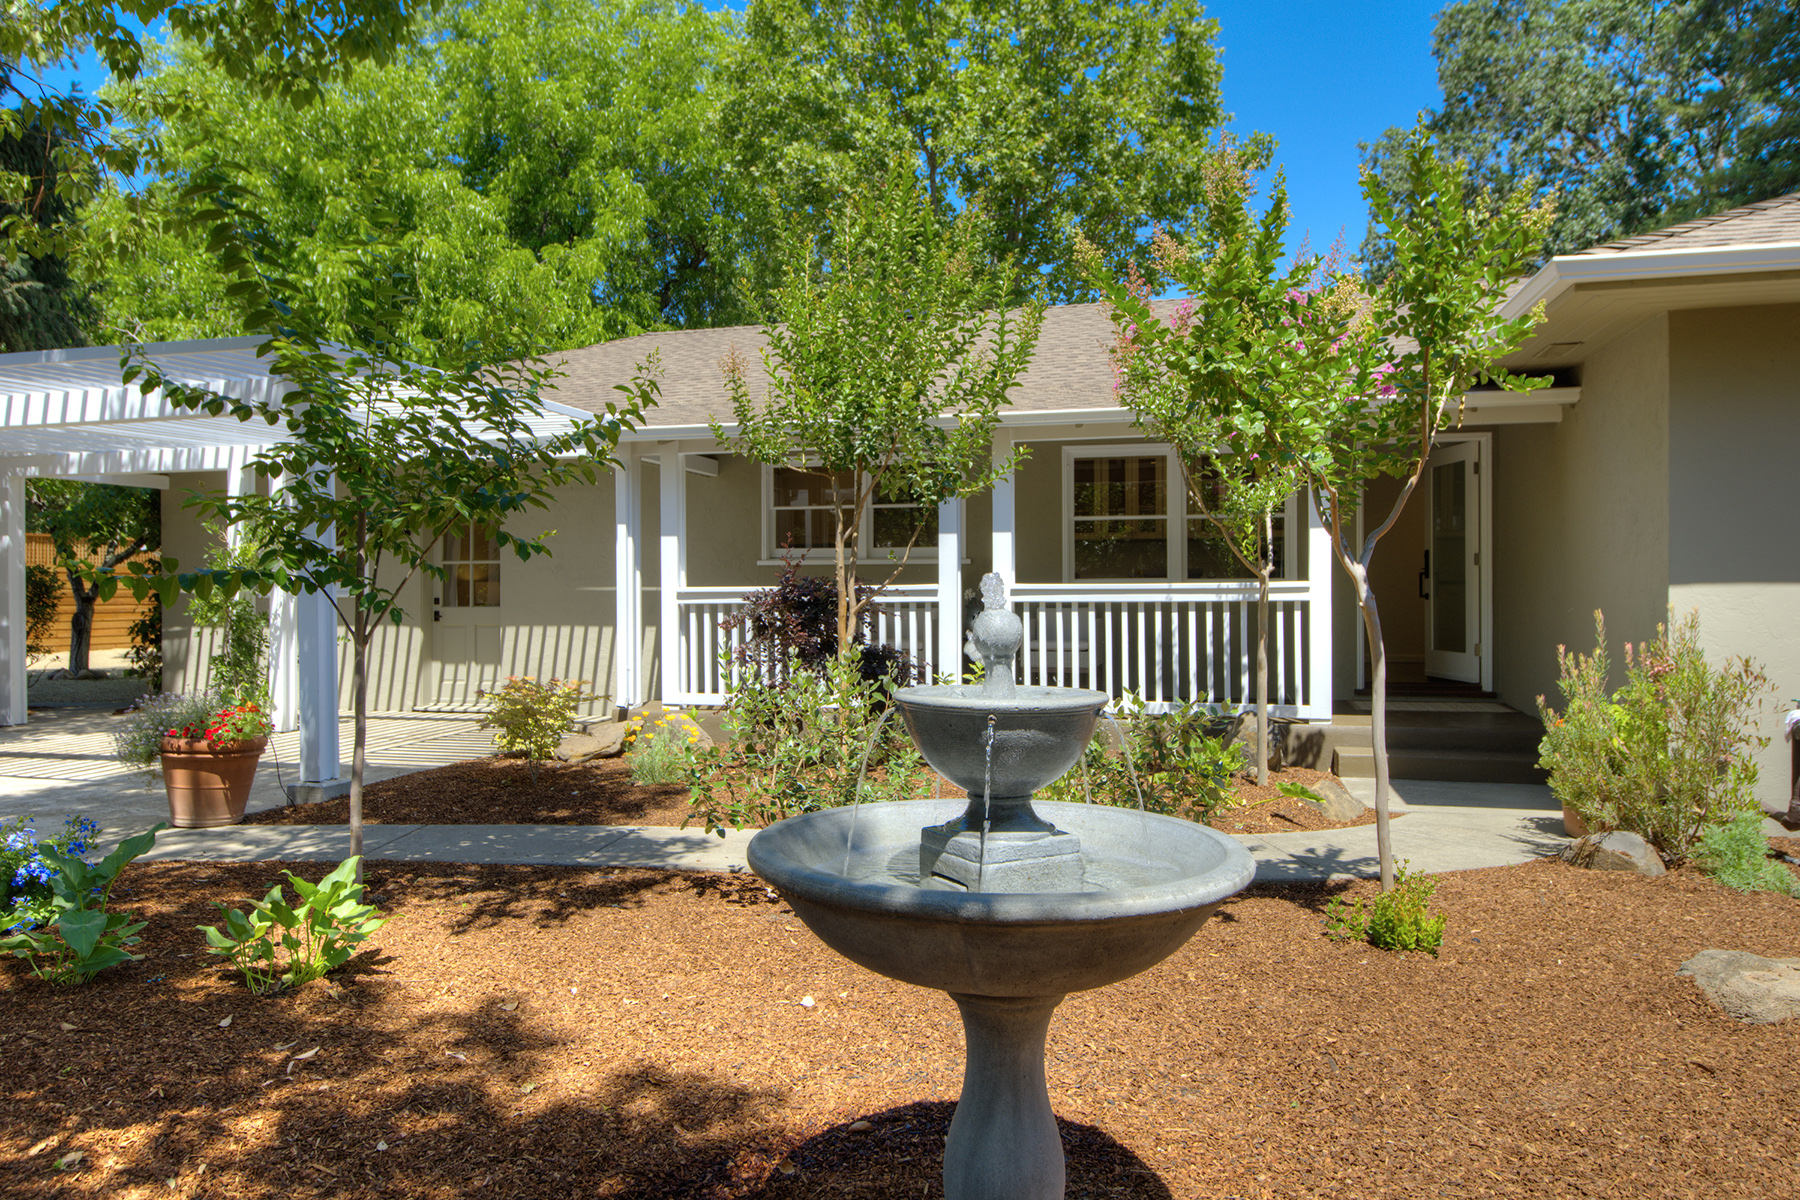 Single Family Home for Sale at 1434 Grayson Ave, St. Helena, CA 94574 1434 Grayson Ave St. Helena, California 94574 United States